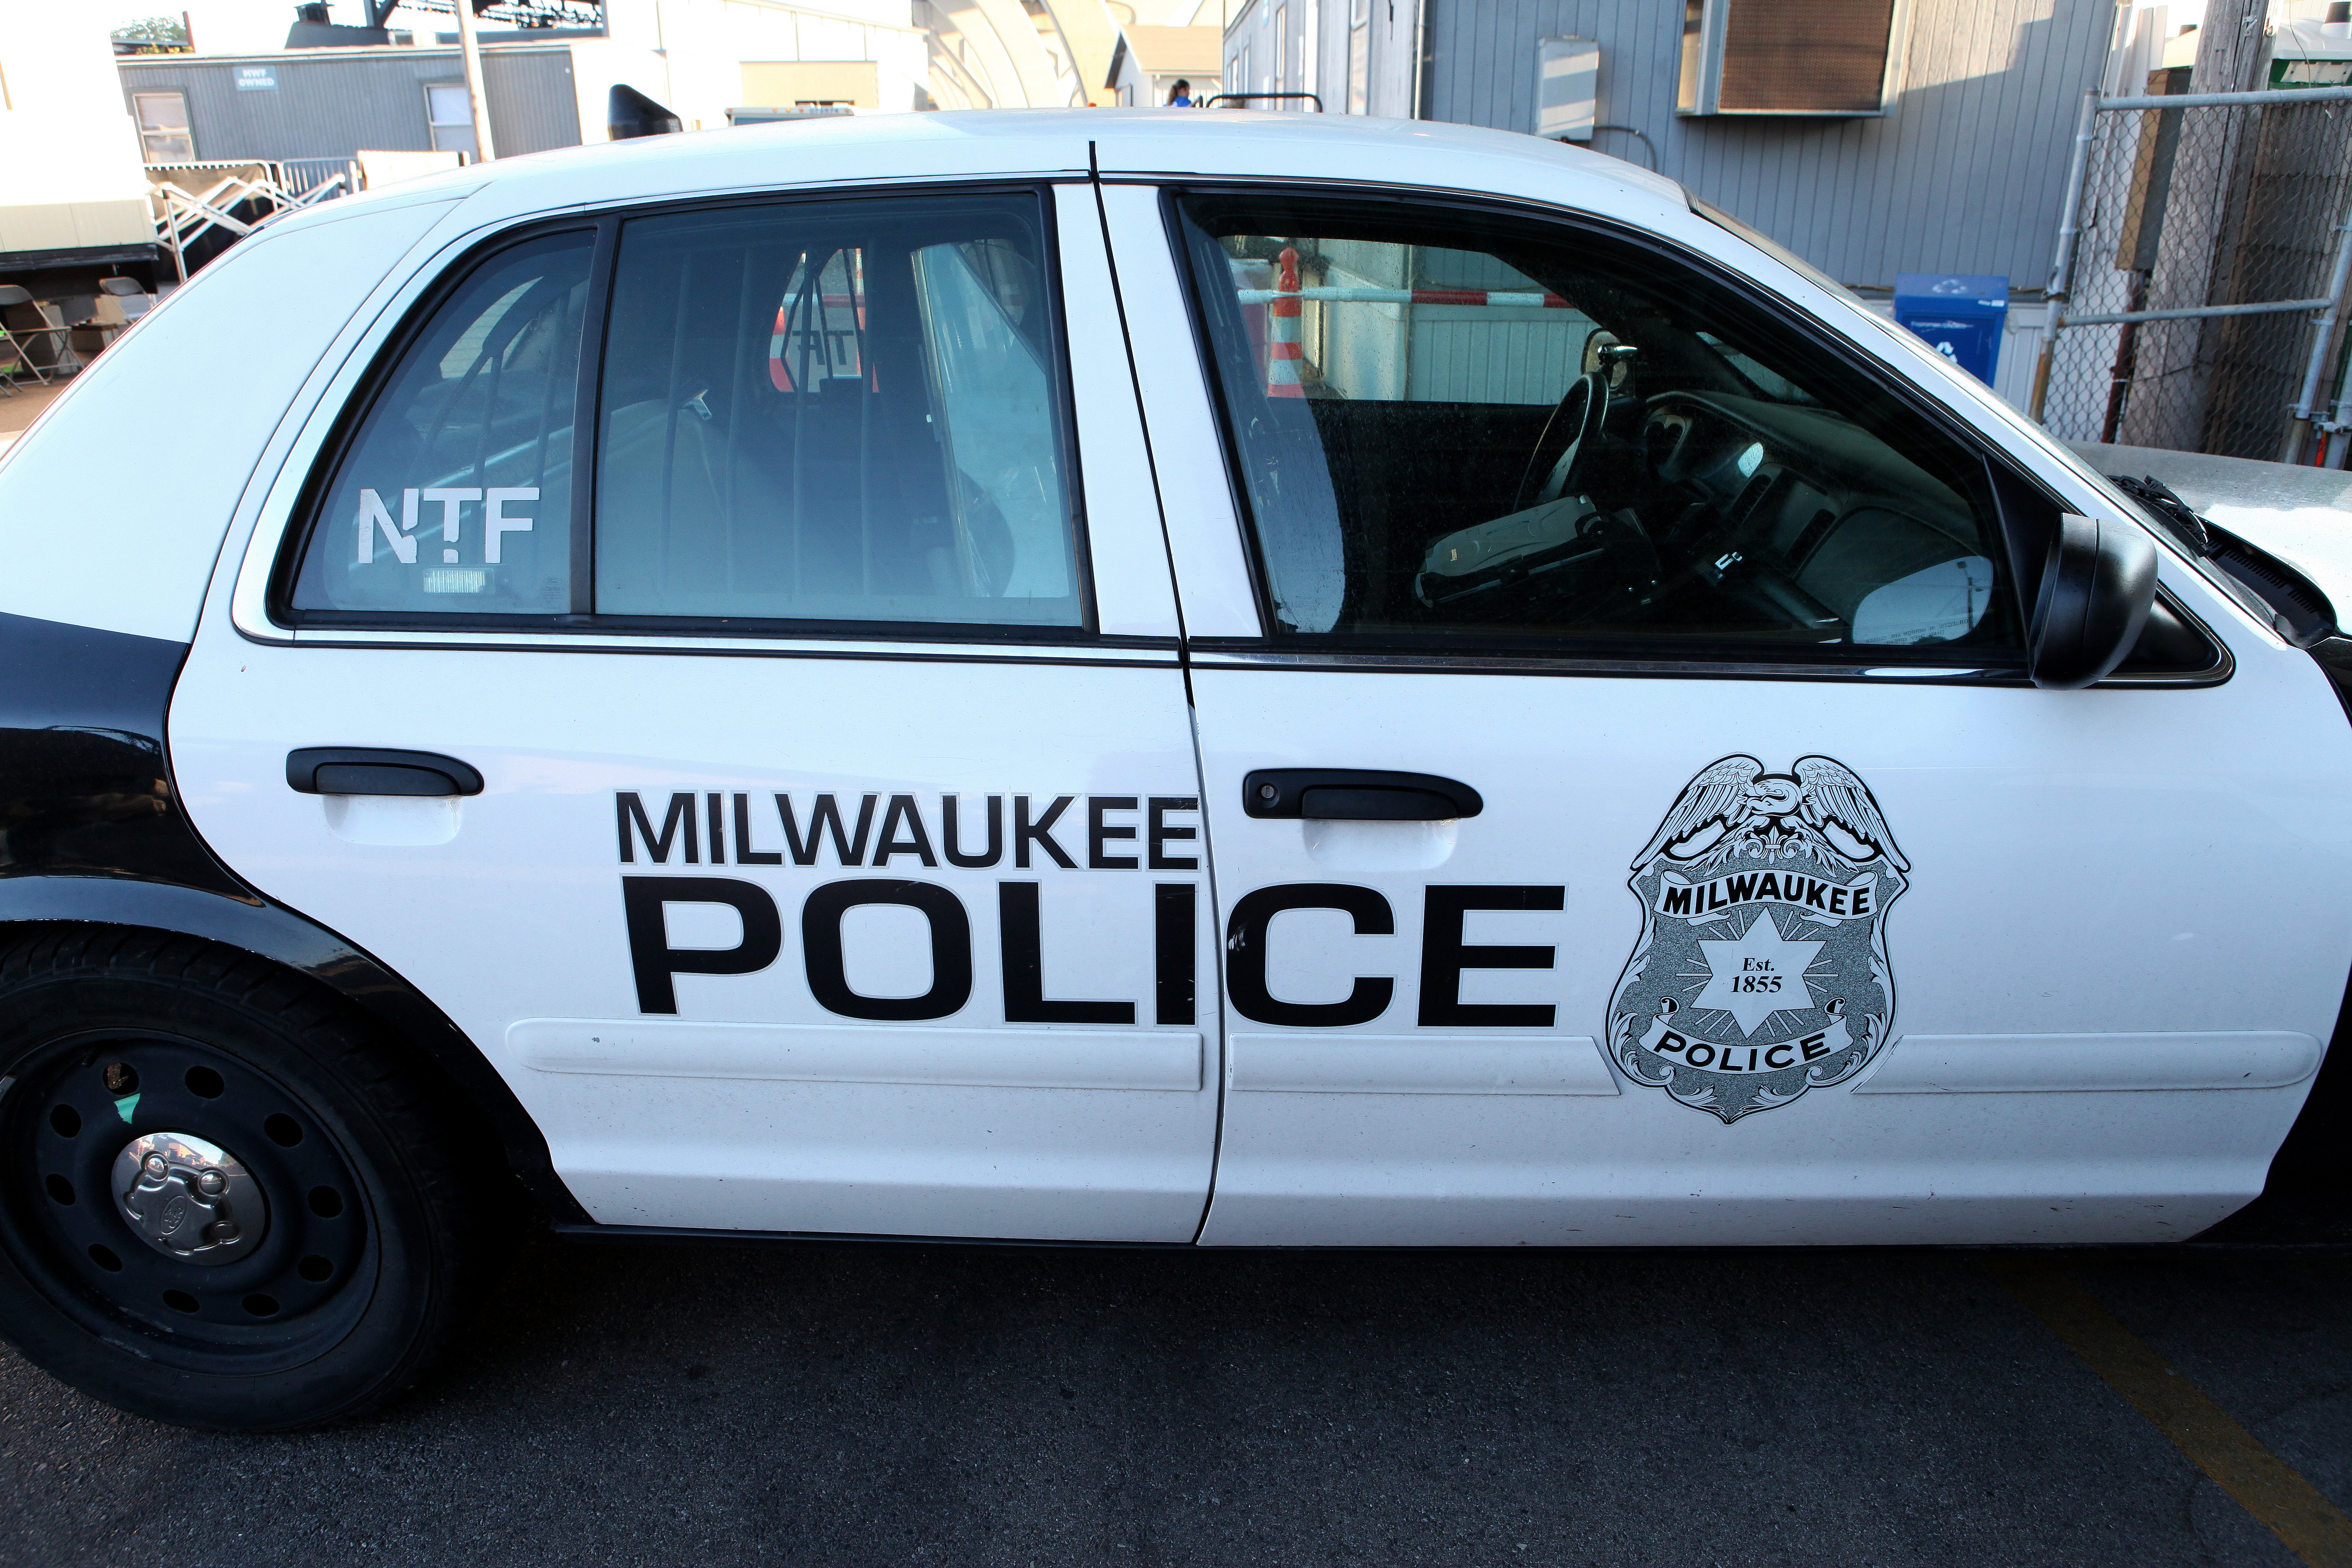 A Milwaukee Police Car on Aug. 30, 2013.